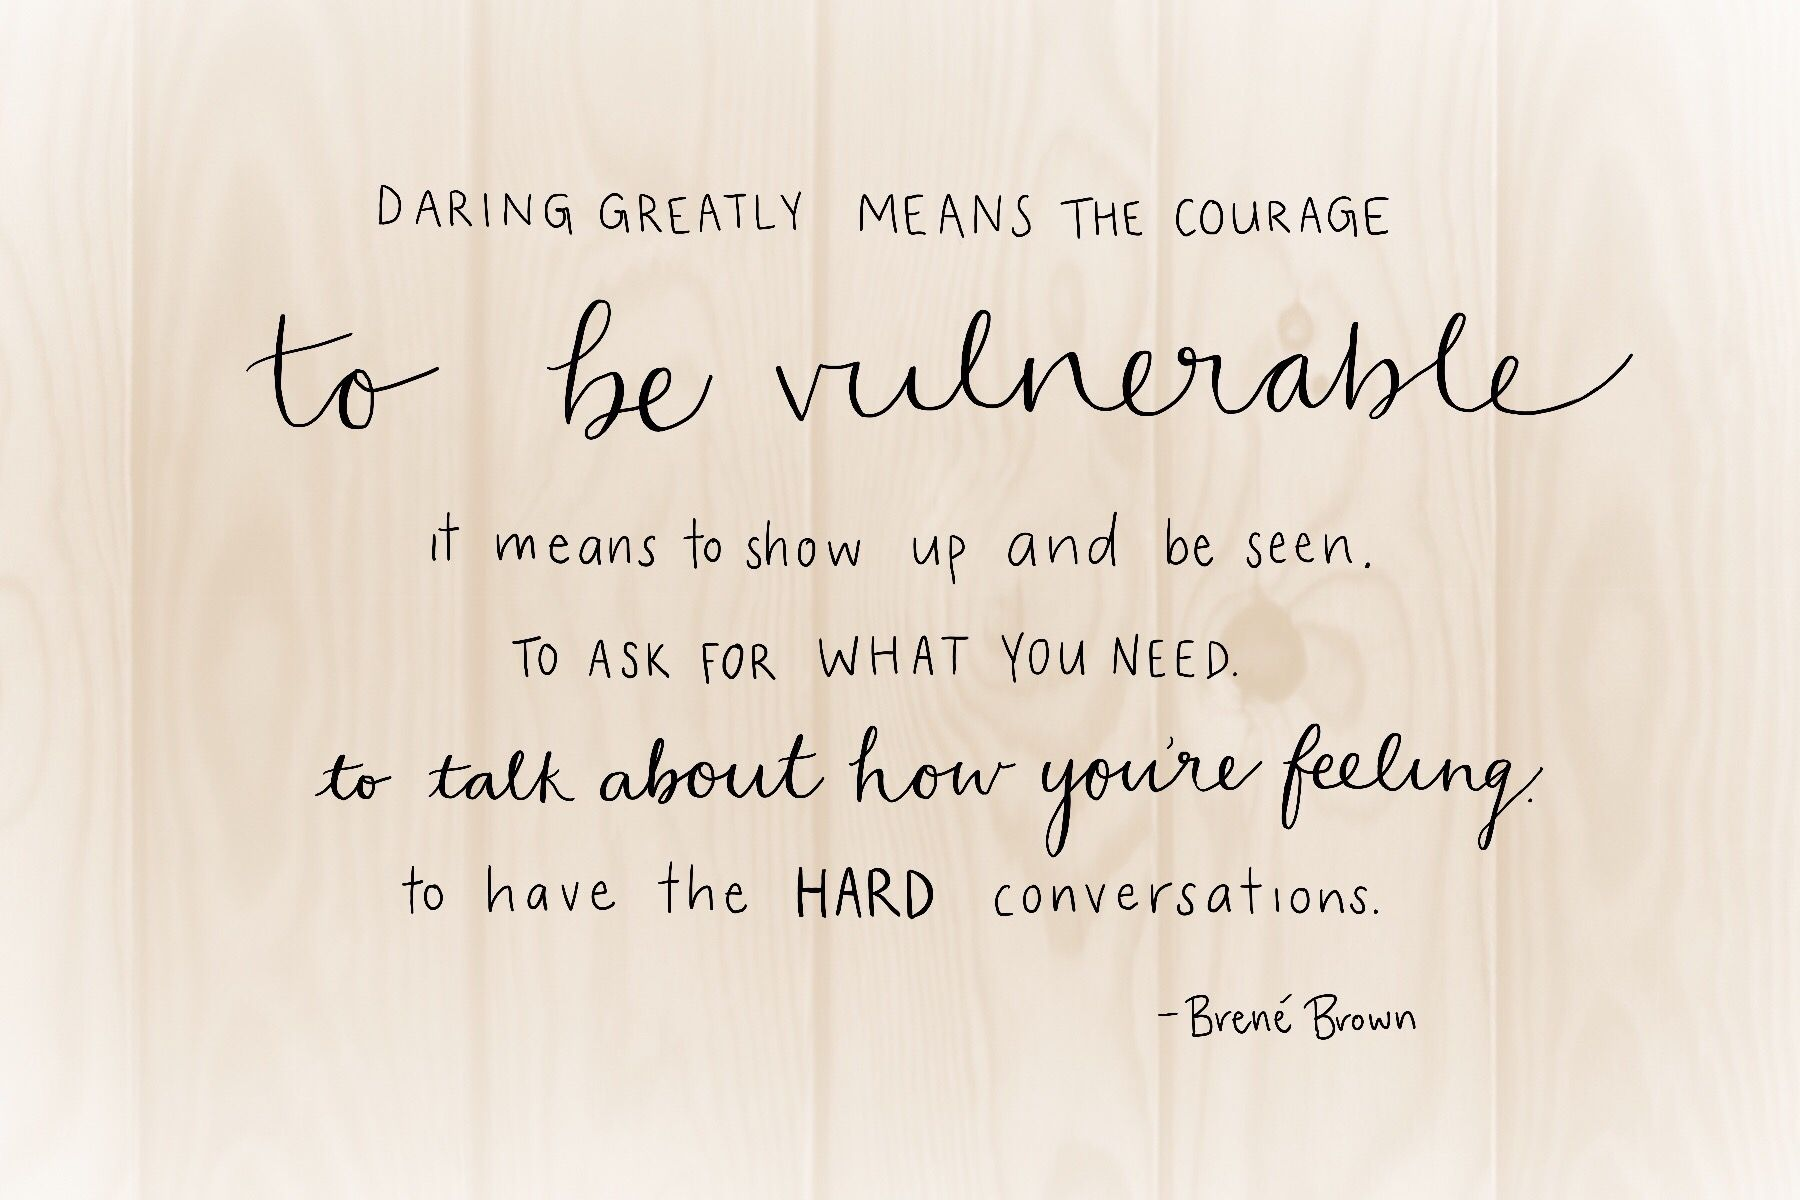 Brene Brown Quotes Interesting Daring Greatly Means The Courage To Be Vulnerable Brene Brown